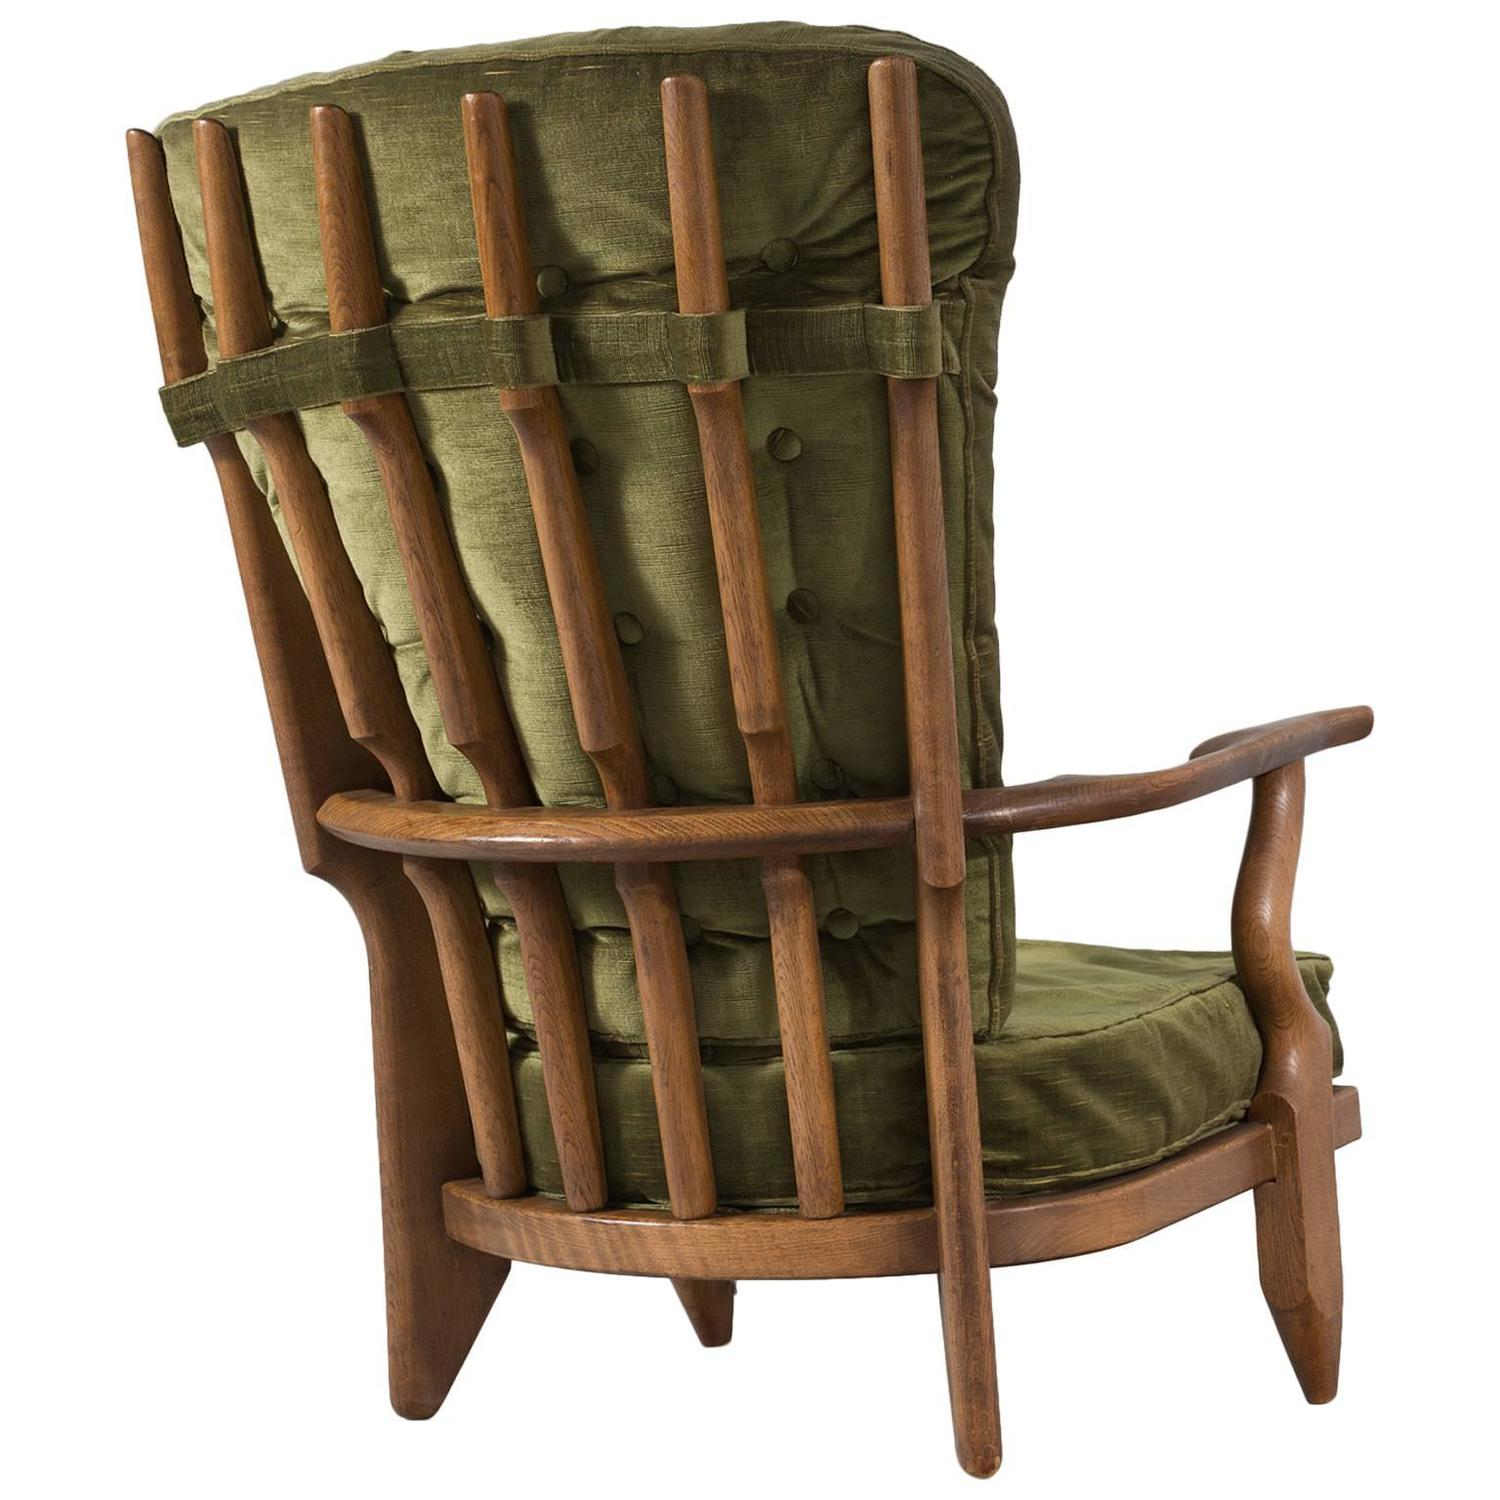 guillerme and chambron high back chair in green velvet upholstery for sale at 1stdibs. Black Bedroom Furniture Sets. Home Design Ideas